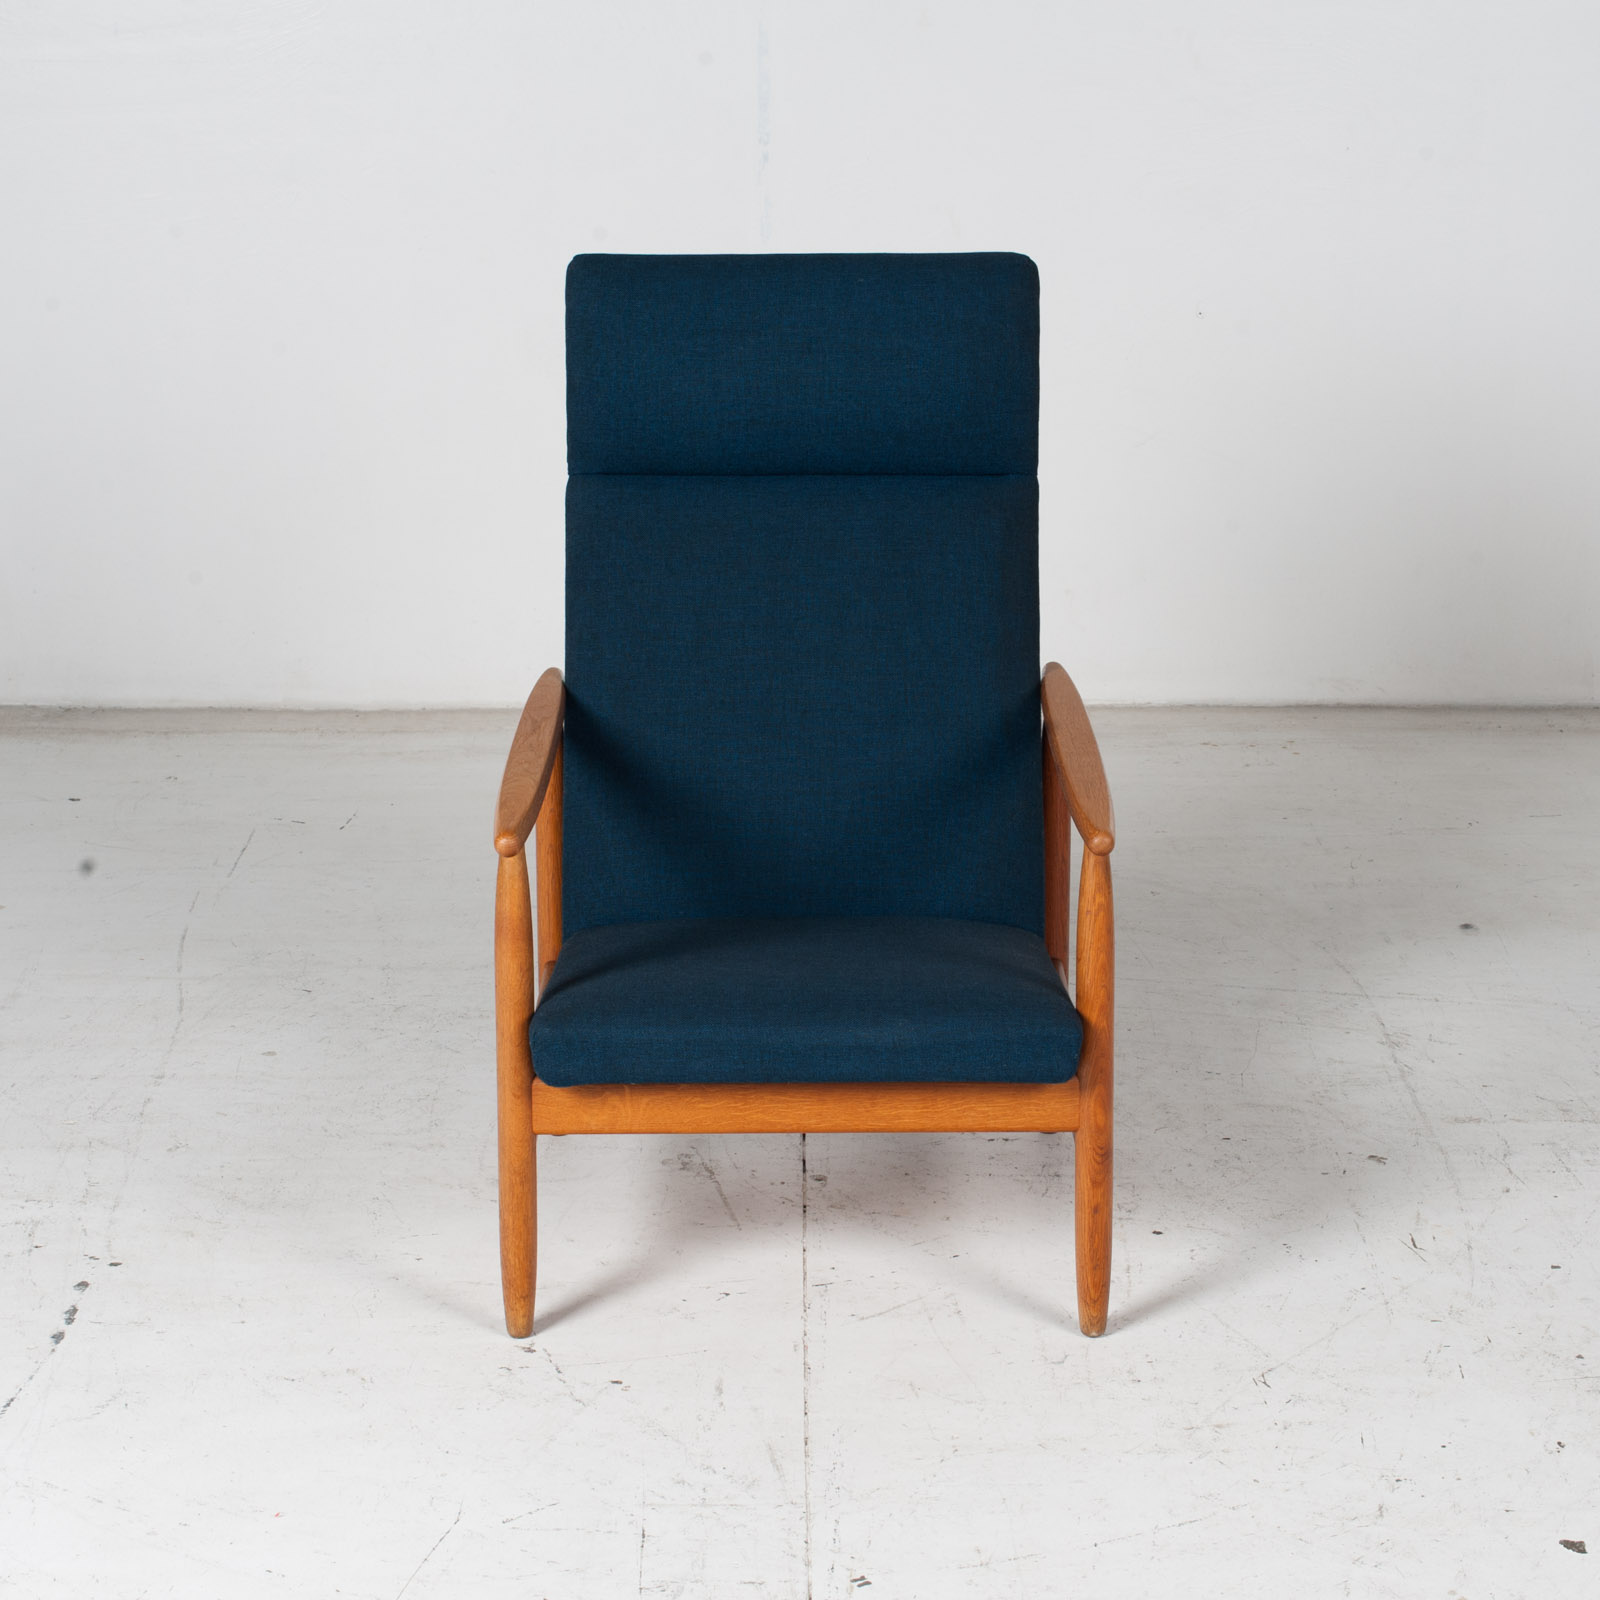 Armchair By Ejvind A. Johansson In Blue Upholstery, 1960s, Denmark2